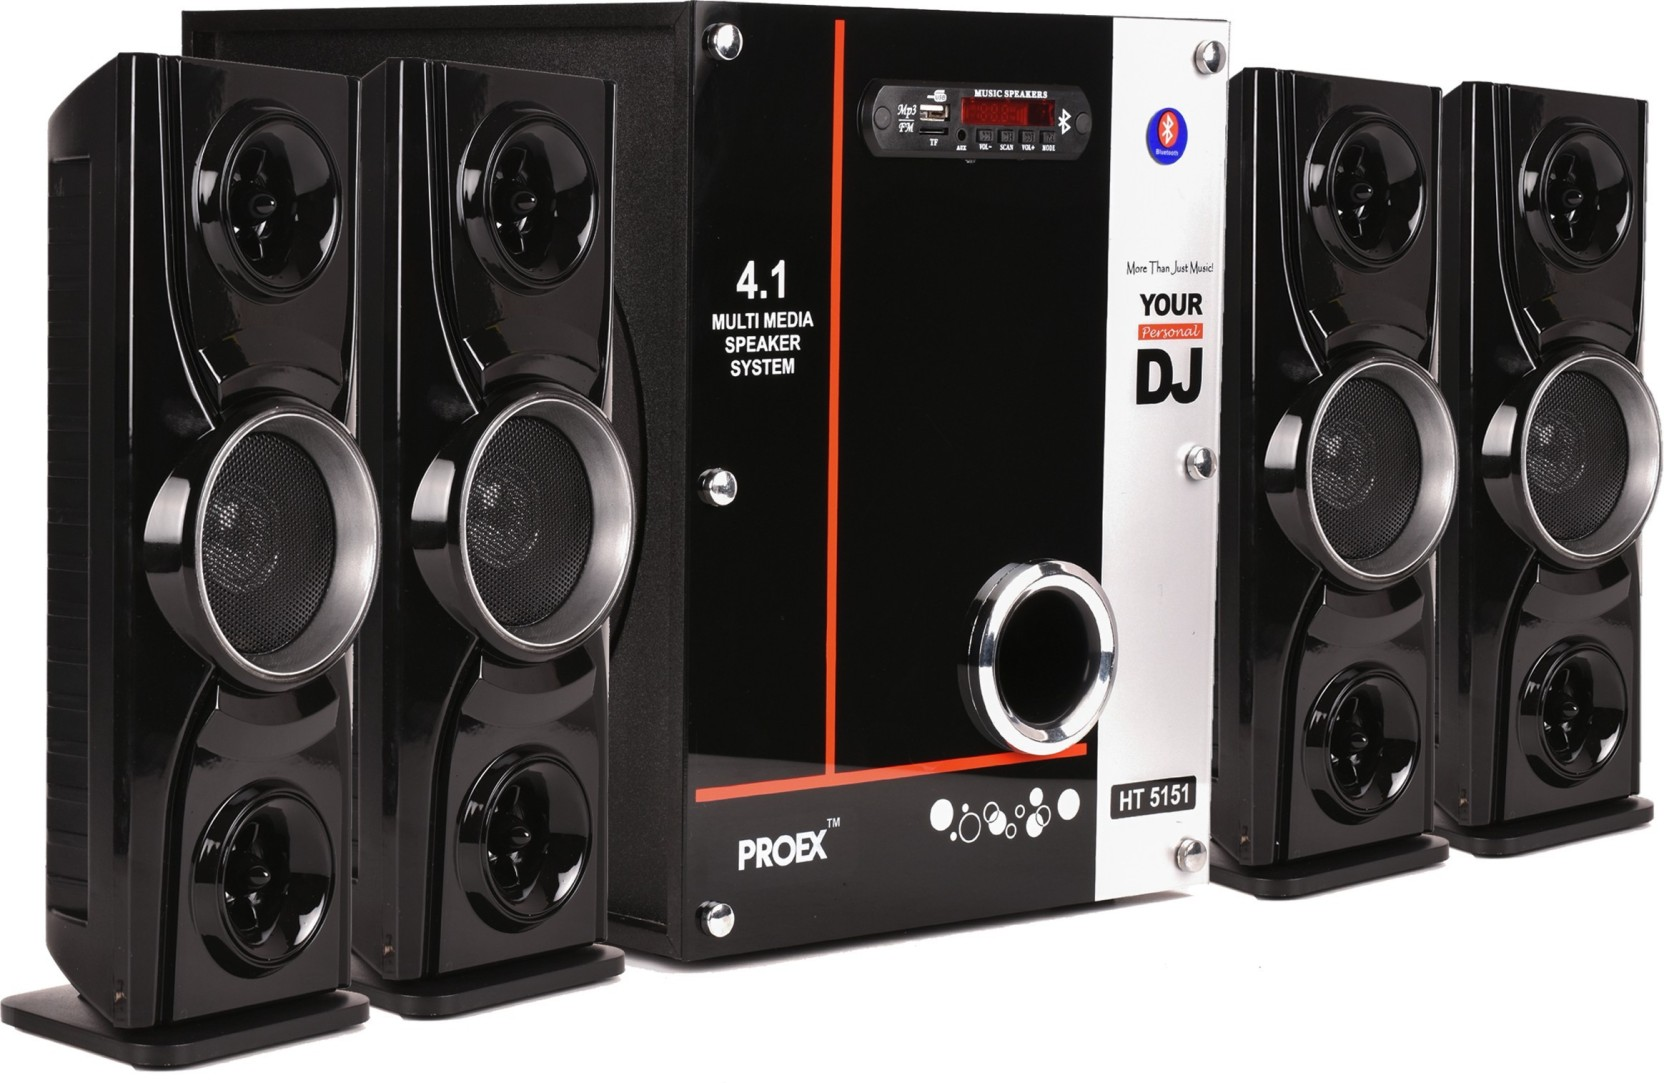 951c72803fd PROEX HT-5151 Multimedia Computer Speakers Home Theater with  Bluetooth/AUX/USB/SD Card Support and Remote Control (Black) 4.1 Tower  Speaker (USB, AUX, ...